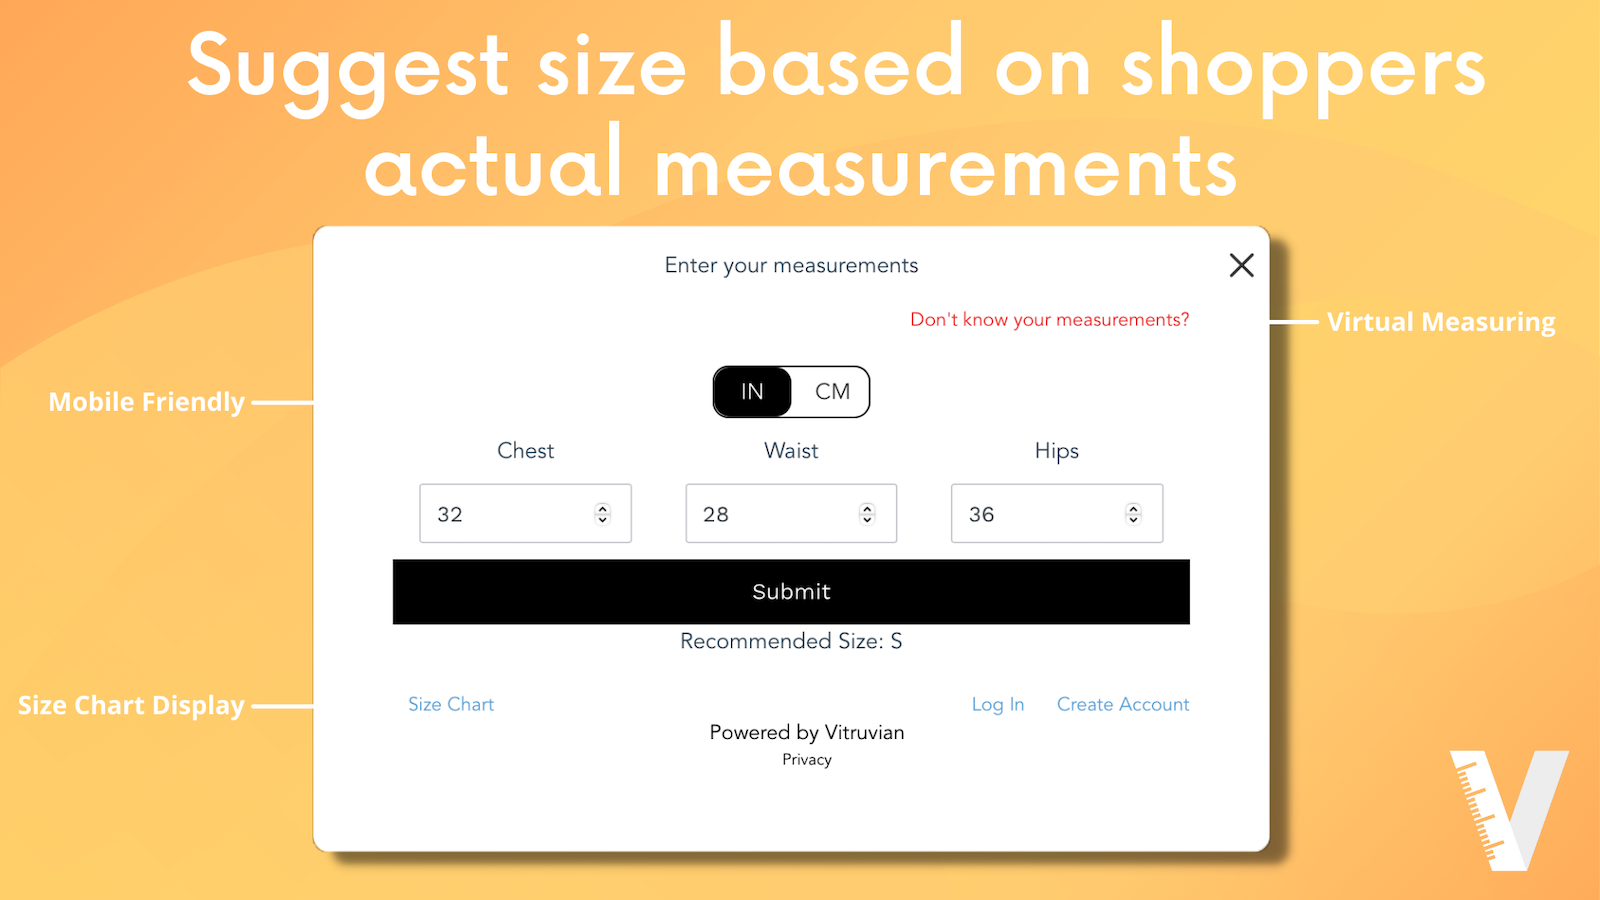 Shoppers get suggested a size based on their actual measurements